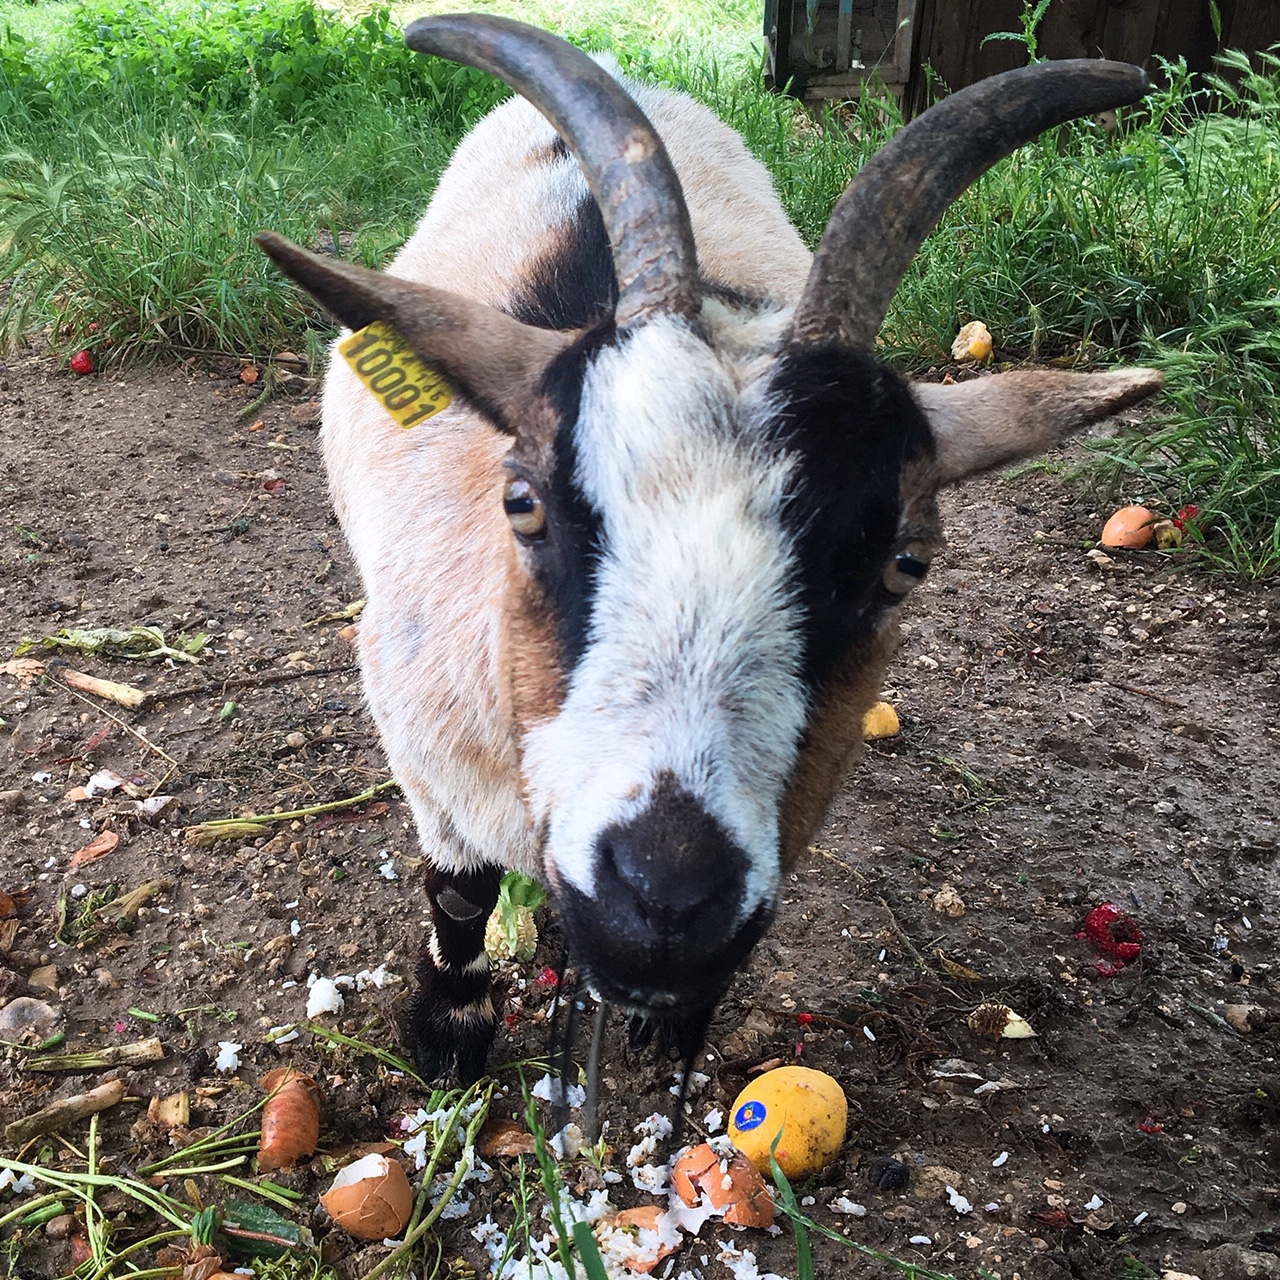 A goat eats food waste in France